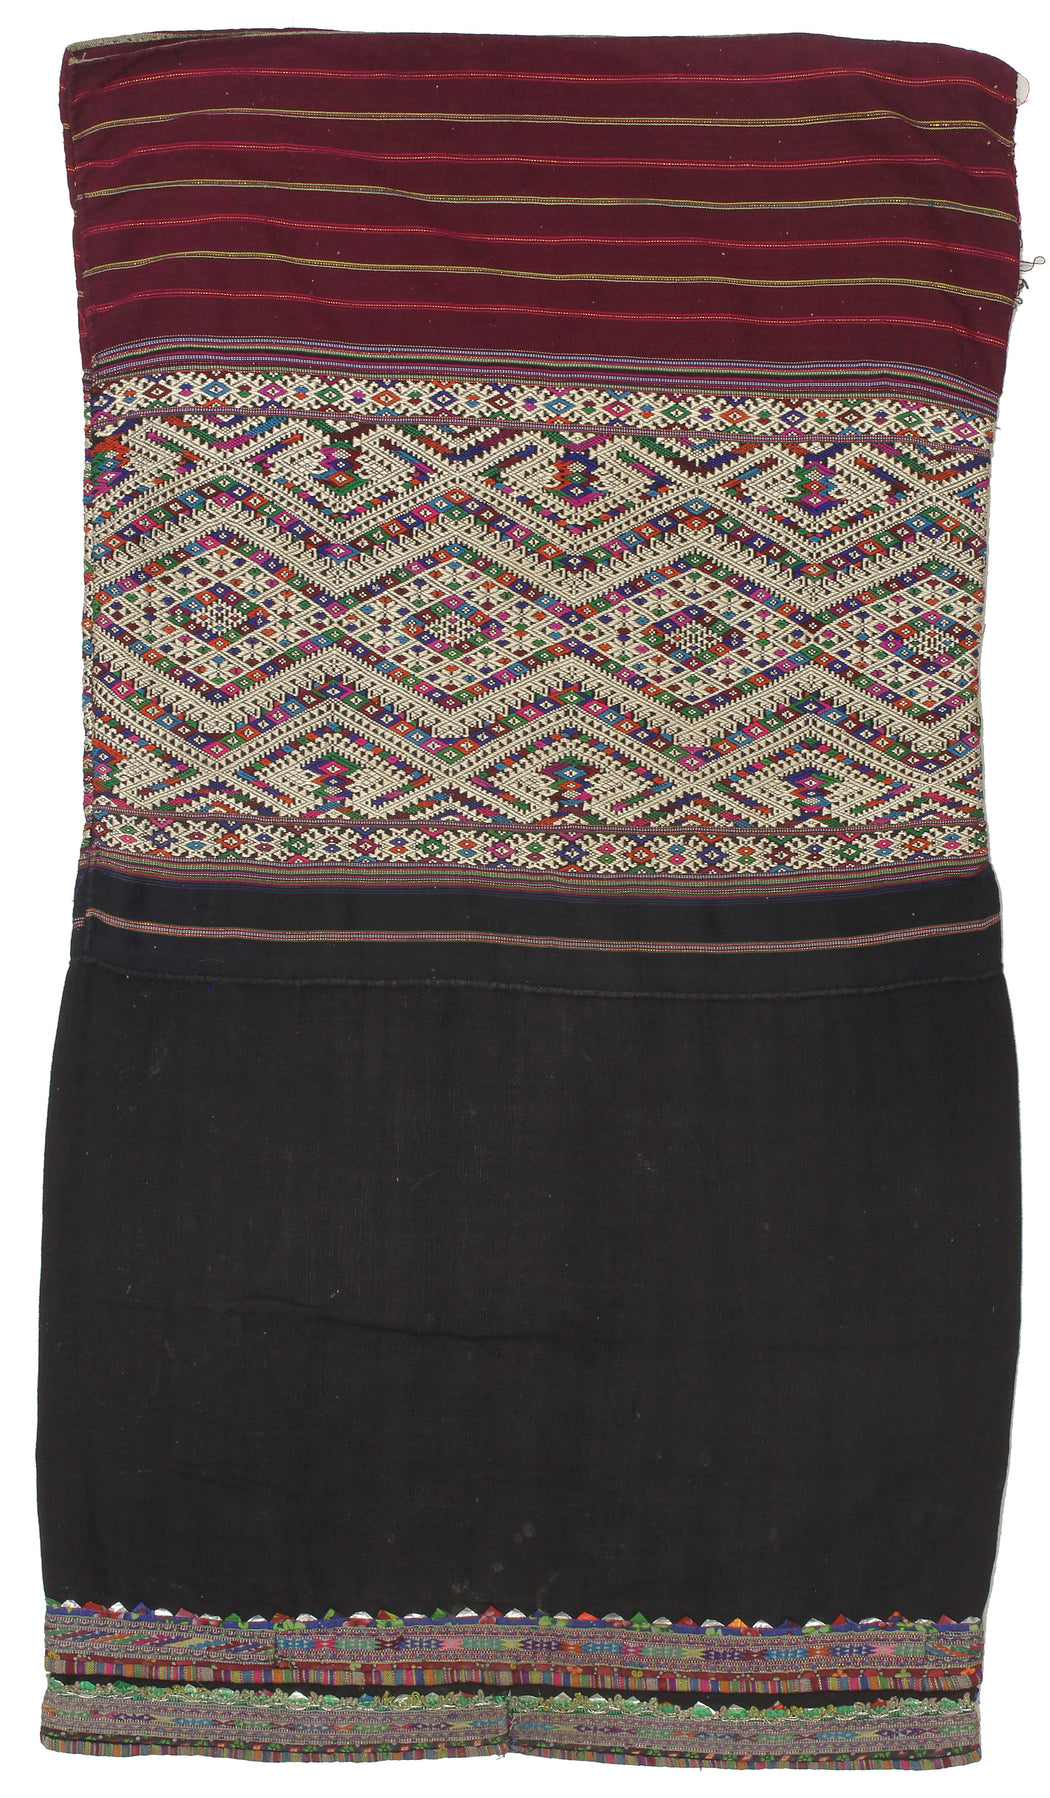 "Vintage Ethnic Lu Skirt from Northern Vietnam | 39"" x 21"" - Niger Bend"